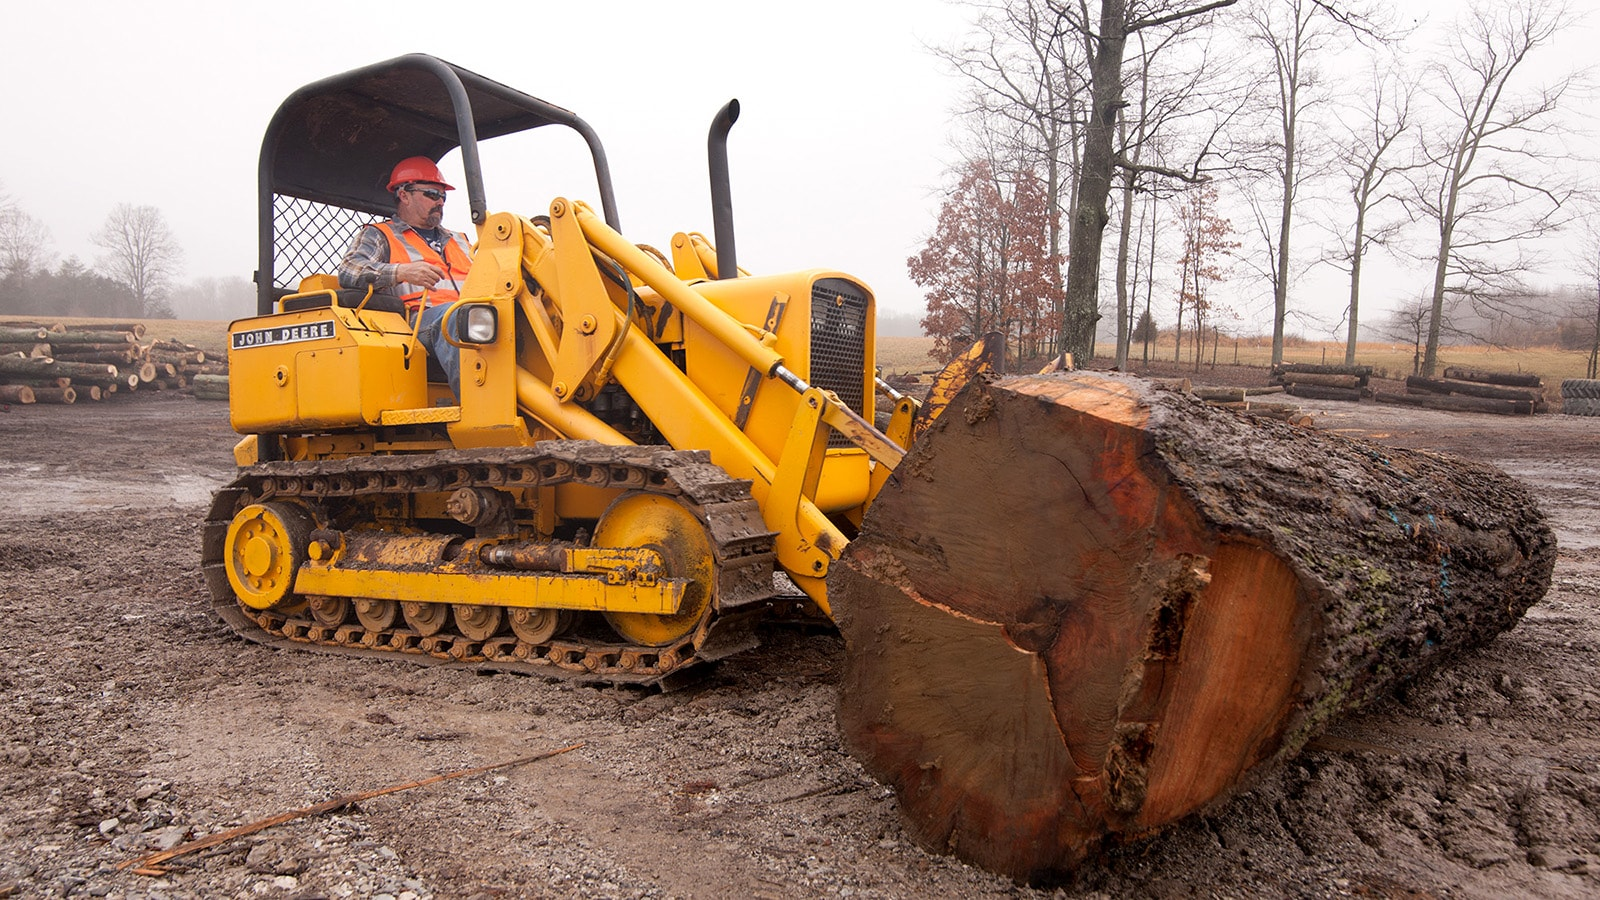 Danny Richards uses a John Deere crawler to move a large log